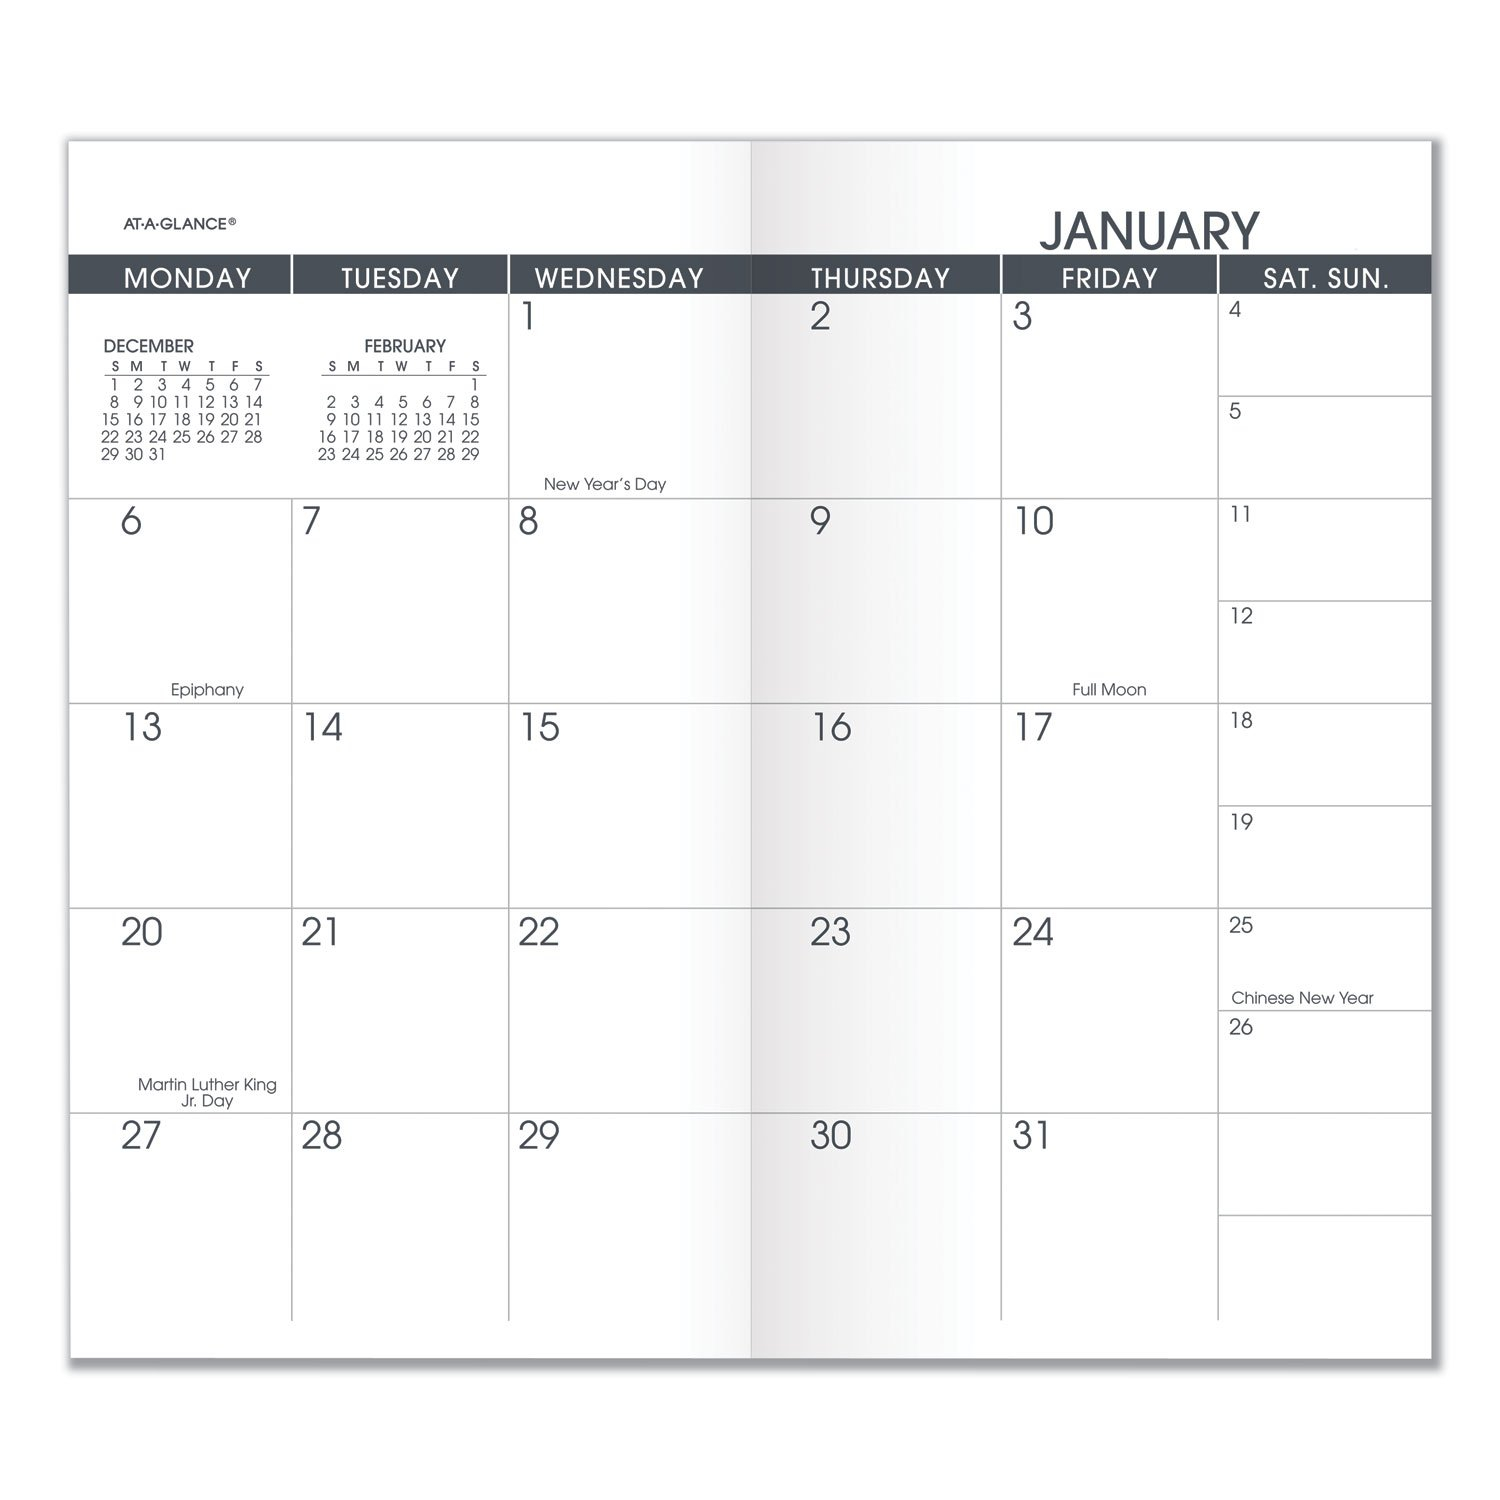 Aag7090610 At A Glance Pocket Size Monthly Planner Refill Free Printable Calendars 5 1/2 X 8 1/2